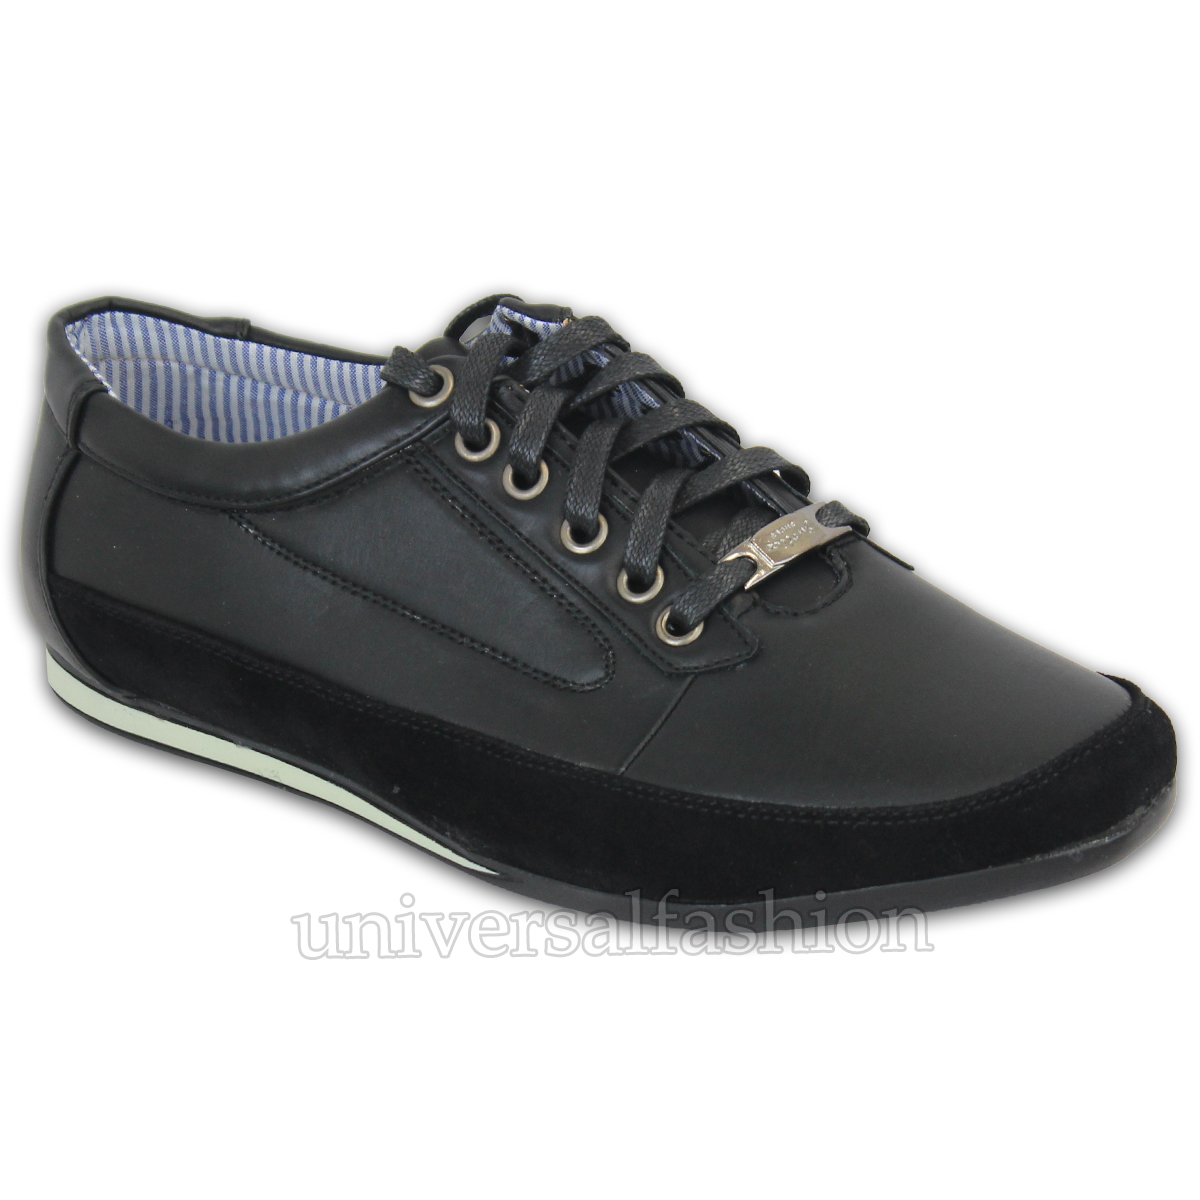 073ca87ccc147 Mens Trainers Shoes Sneakers Pump Black Lace Up Leather Fashion ...